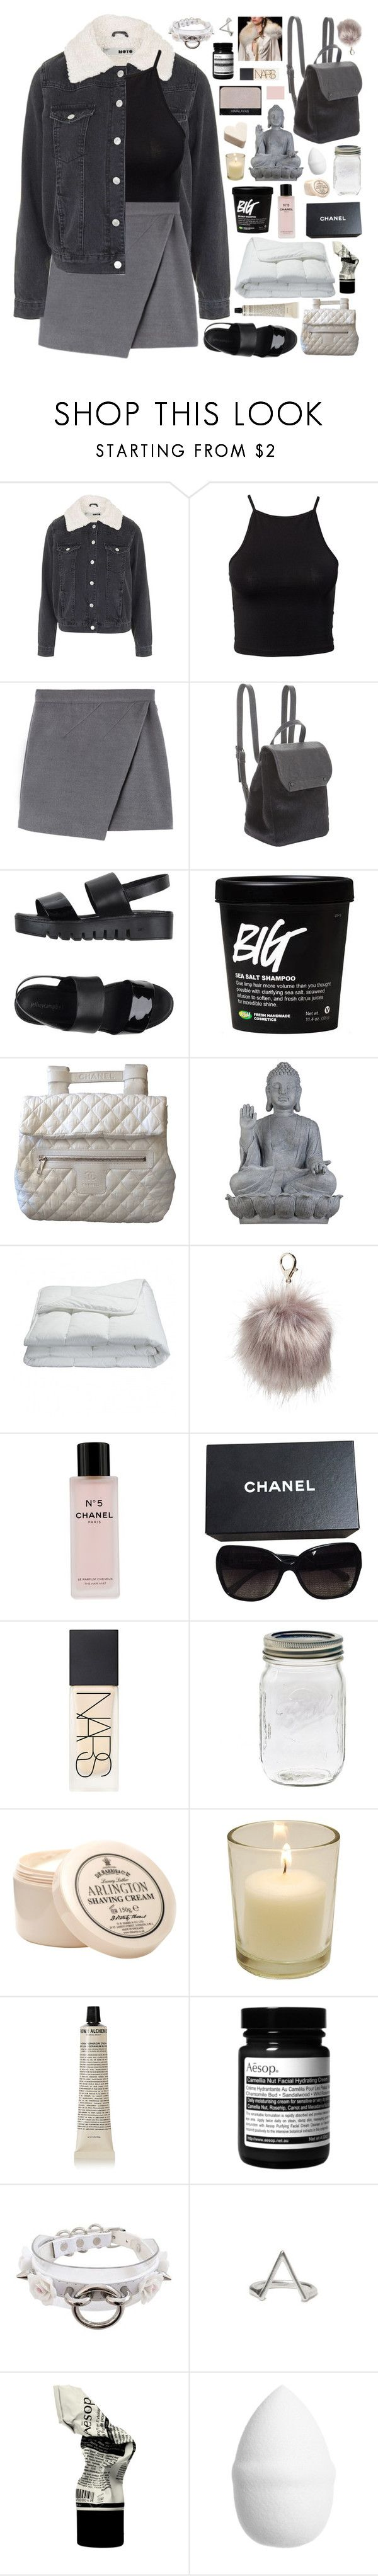 """""""11:11AM — """"WAS IT EVEN REAL TO YOU"""""""" by dance-the-pain-away ❤ liked on Polyvore featuring Topshop, NLY Trend, BCBGeneration, Jeffrey Campbell, NARS Cosmetics, Chanel, Universal Lighting and Decor, Frette, Nila Anthony and D.R. Harris & Co Ltd."""